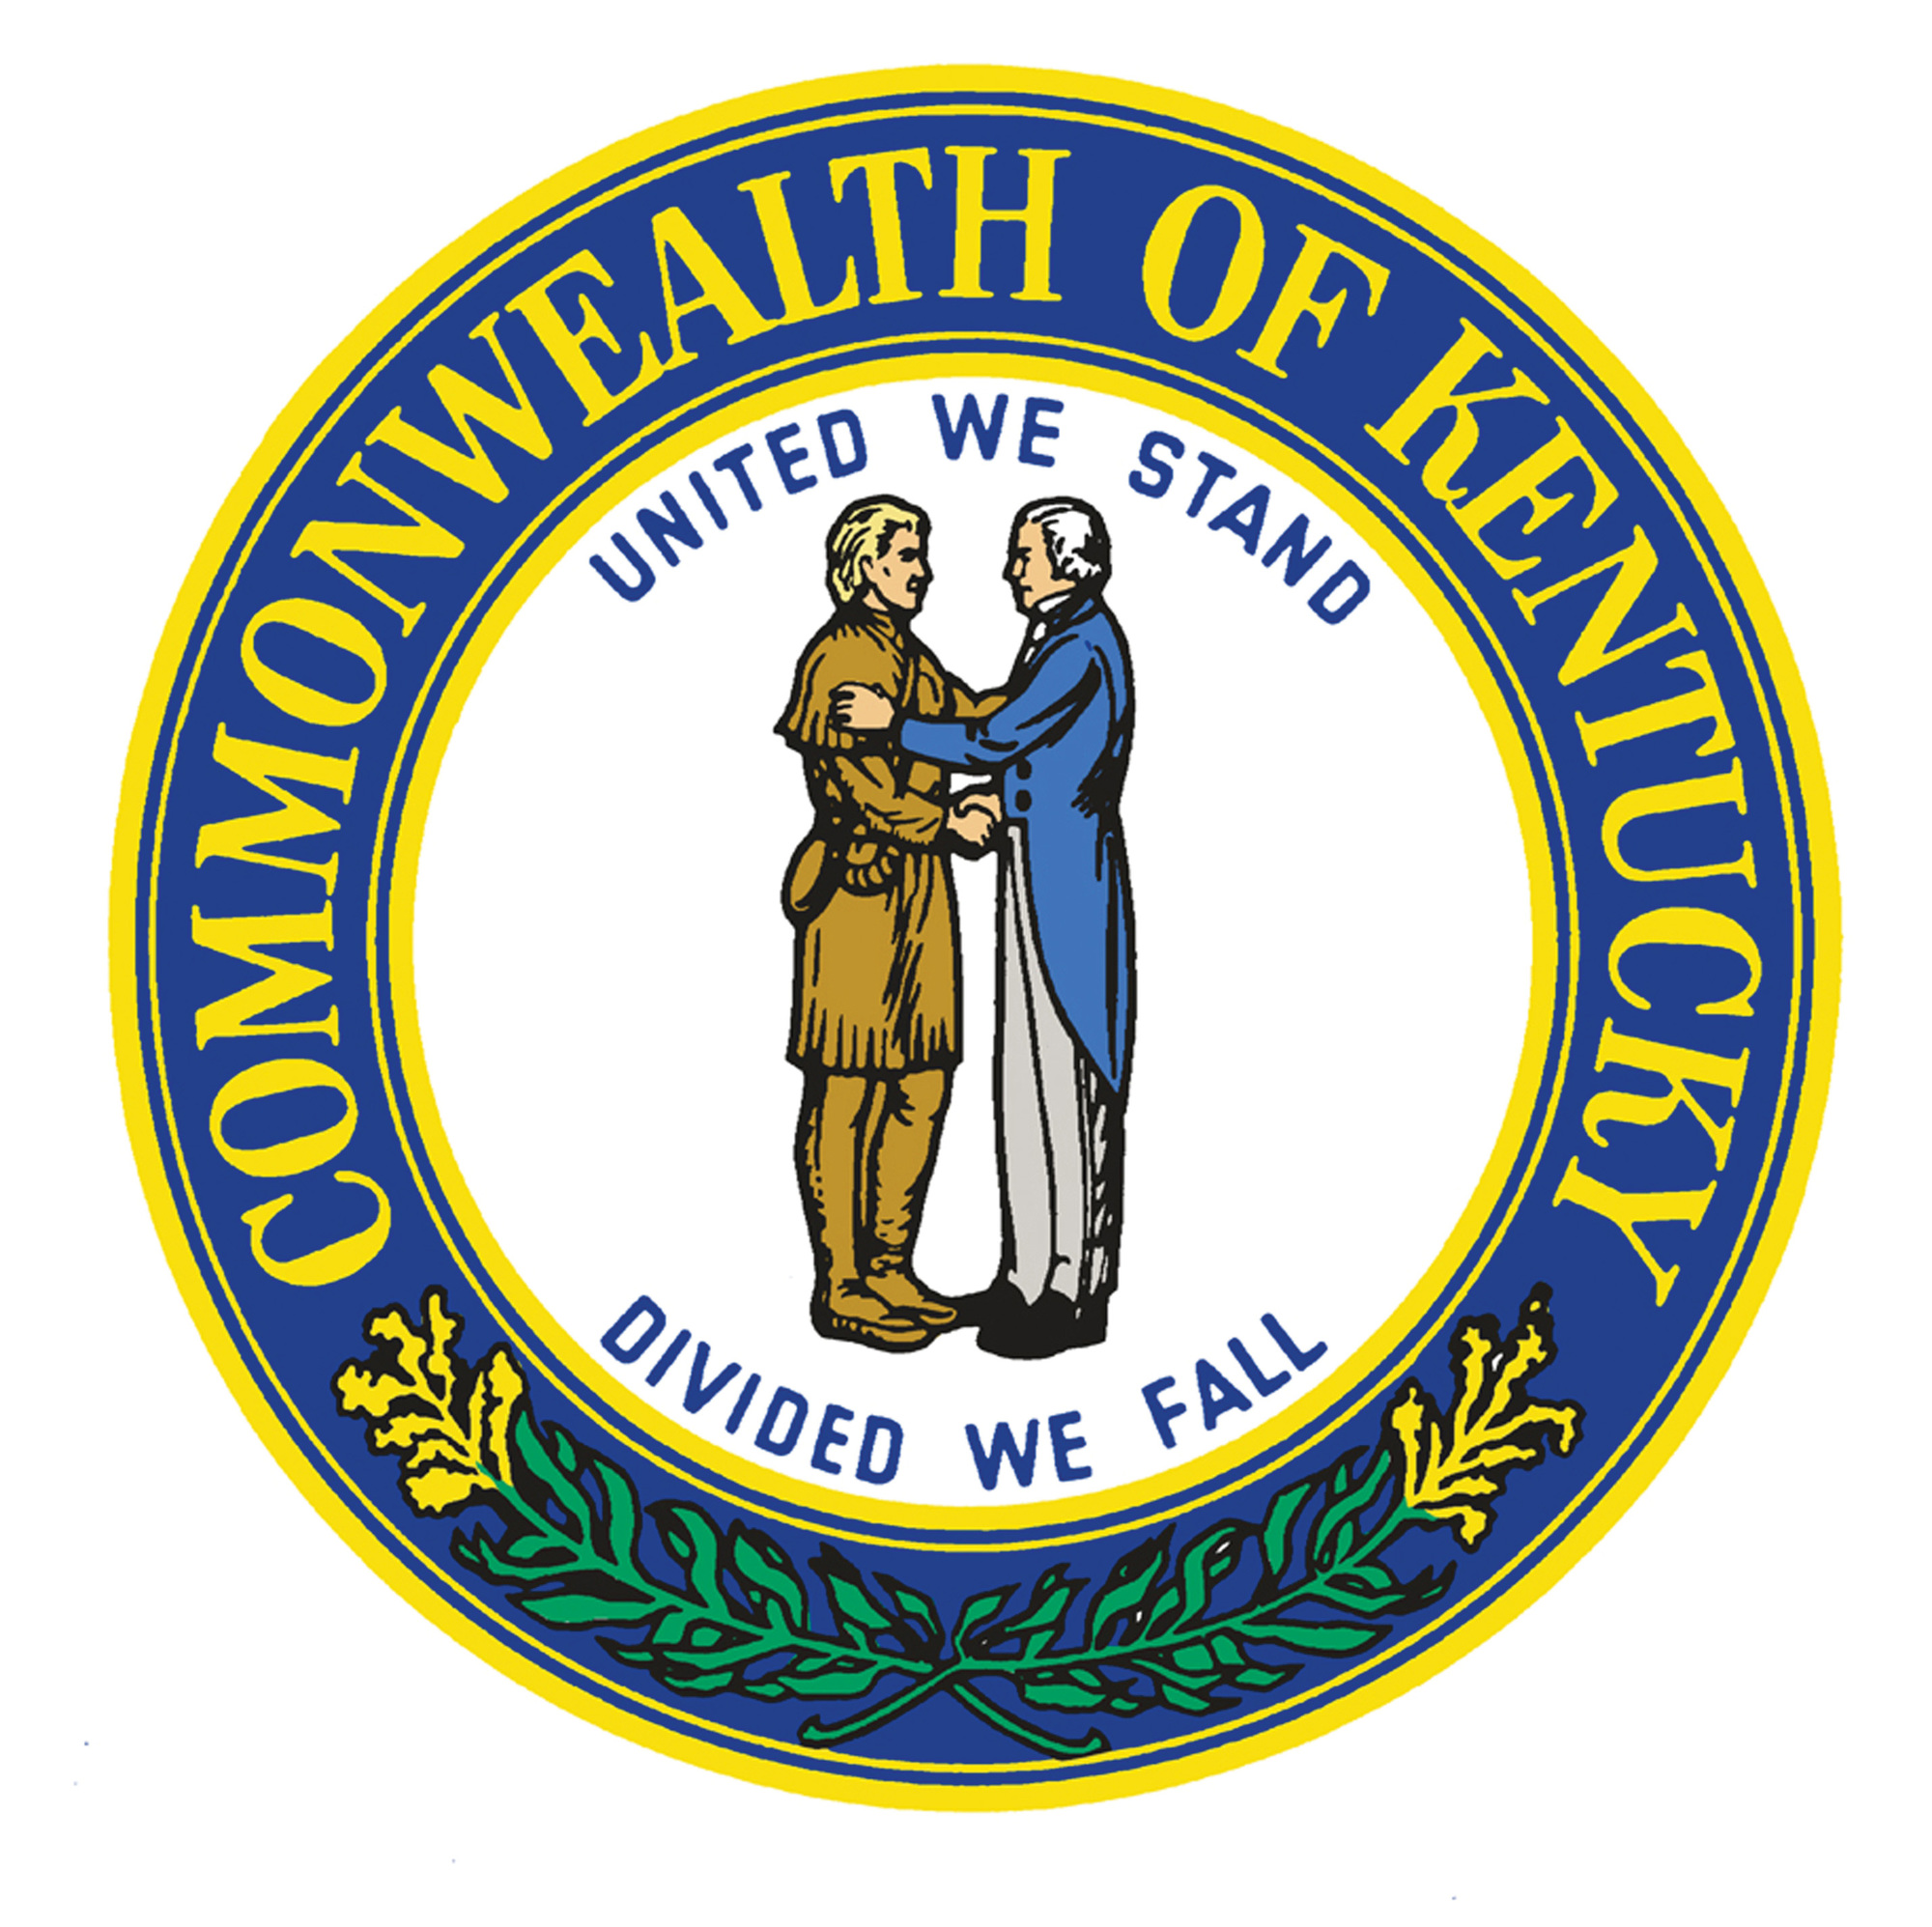 Kentucky Energy and Environment Cabinet